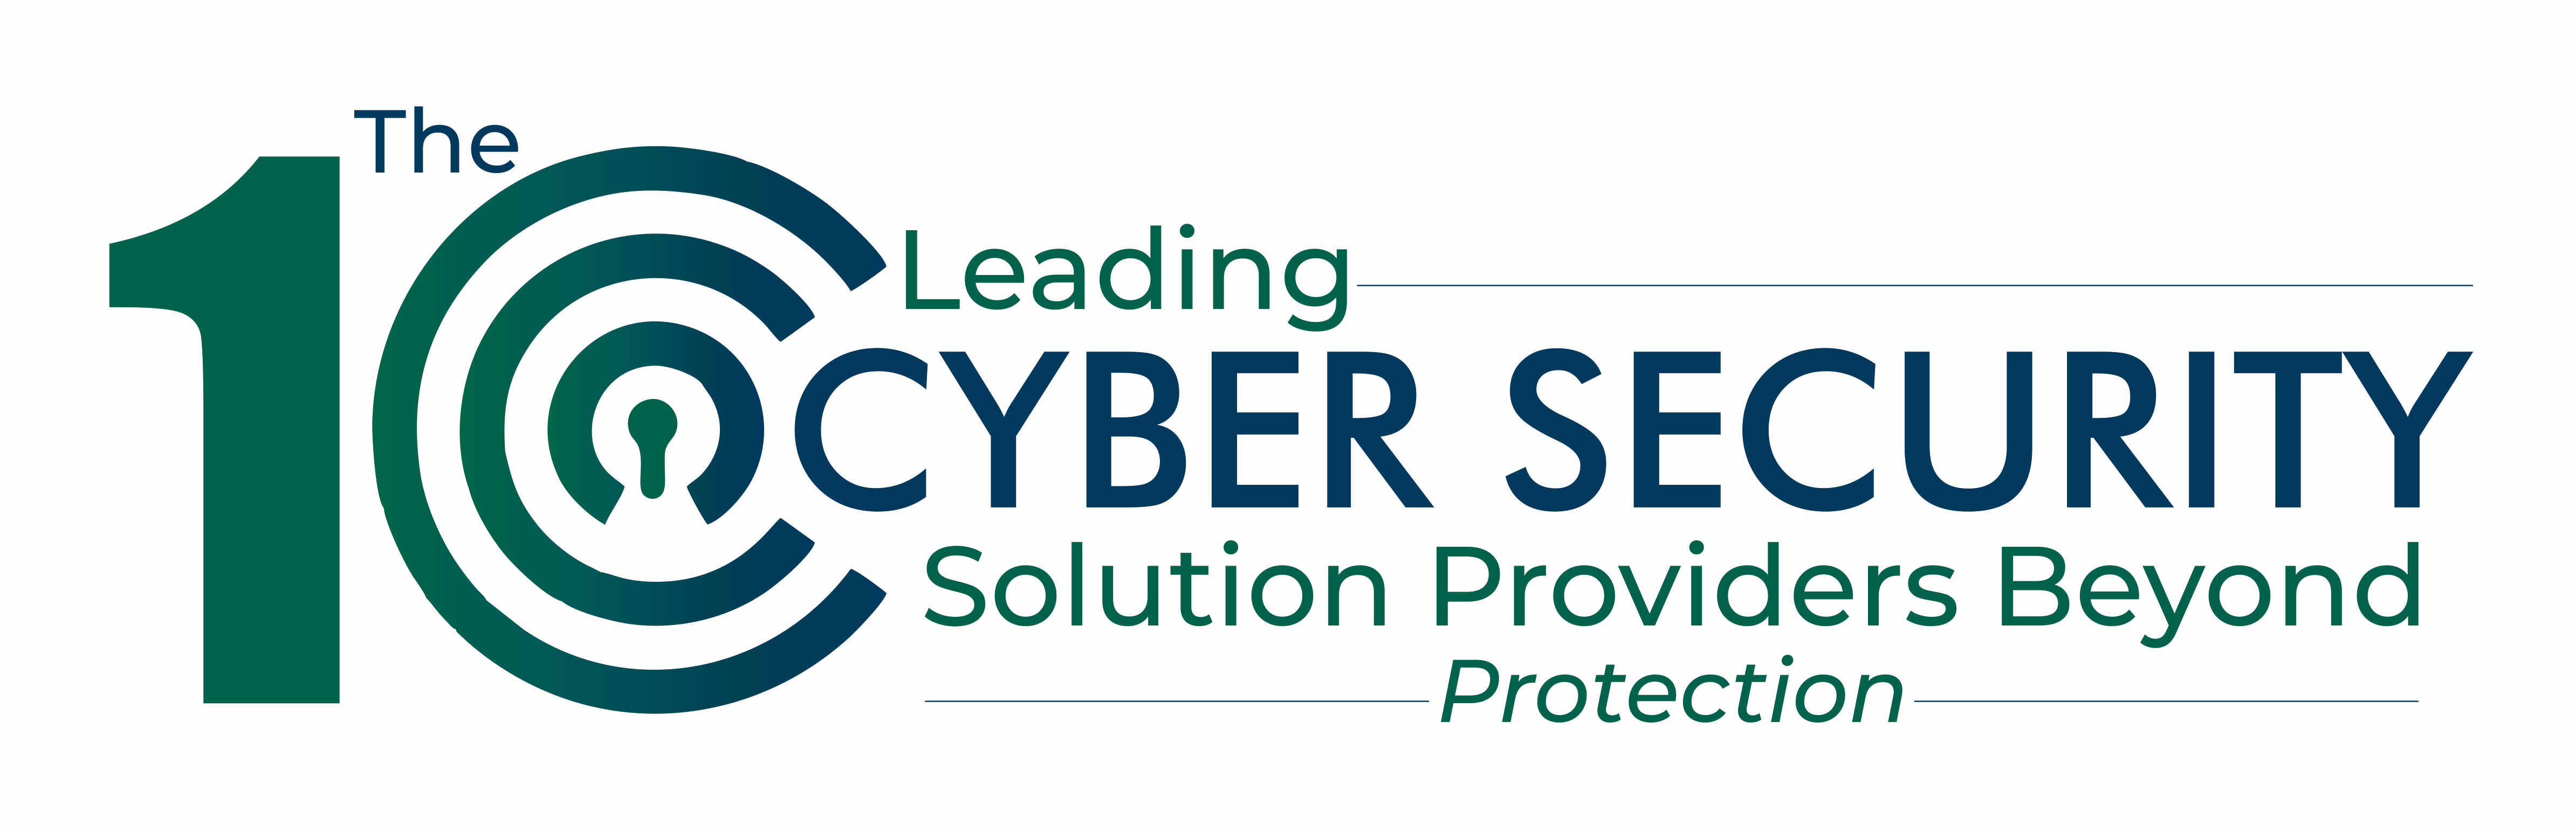 Enzoic Part of The 10 Leading Cyber Security Solution Providers- Beyond Protection